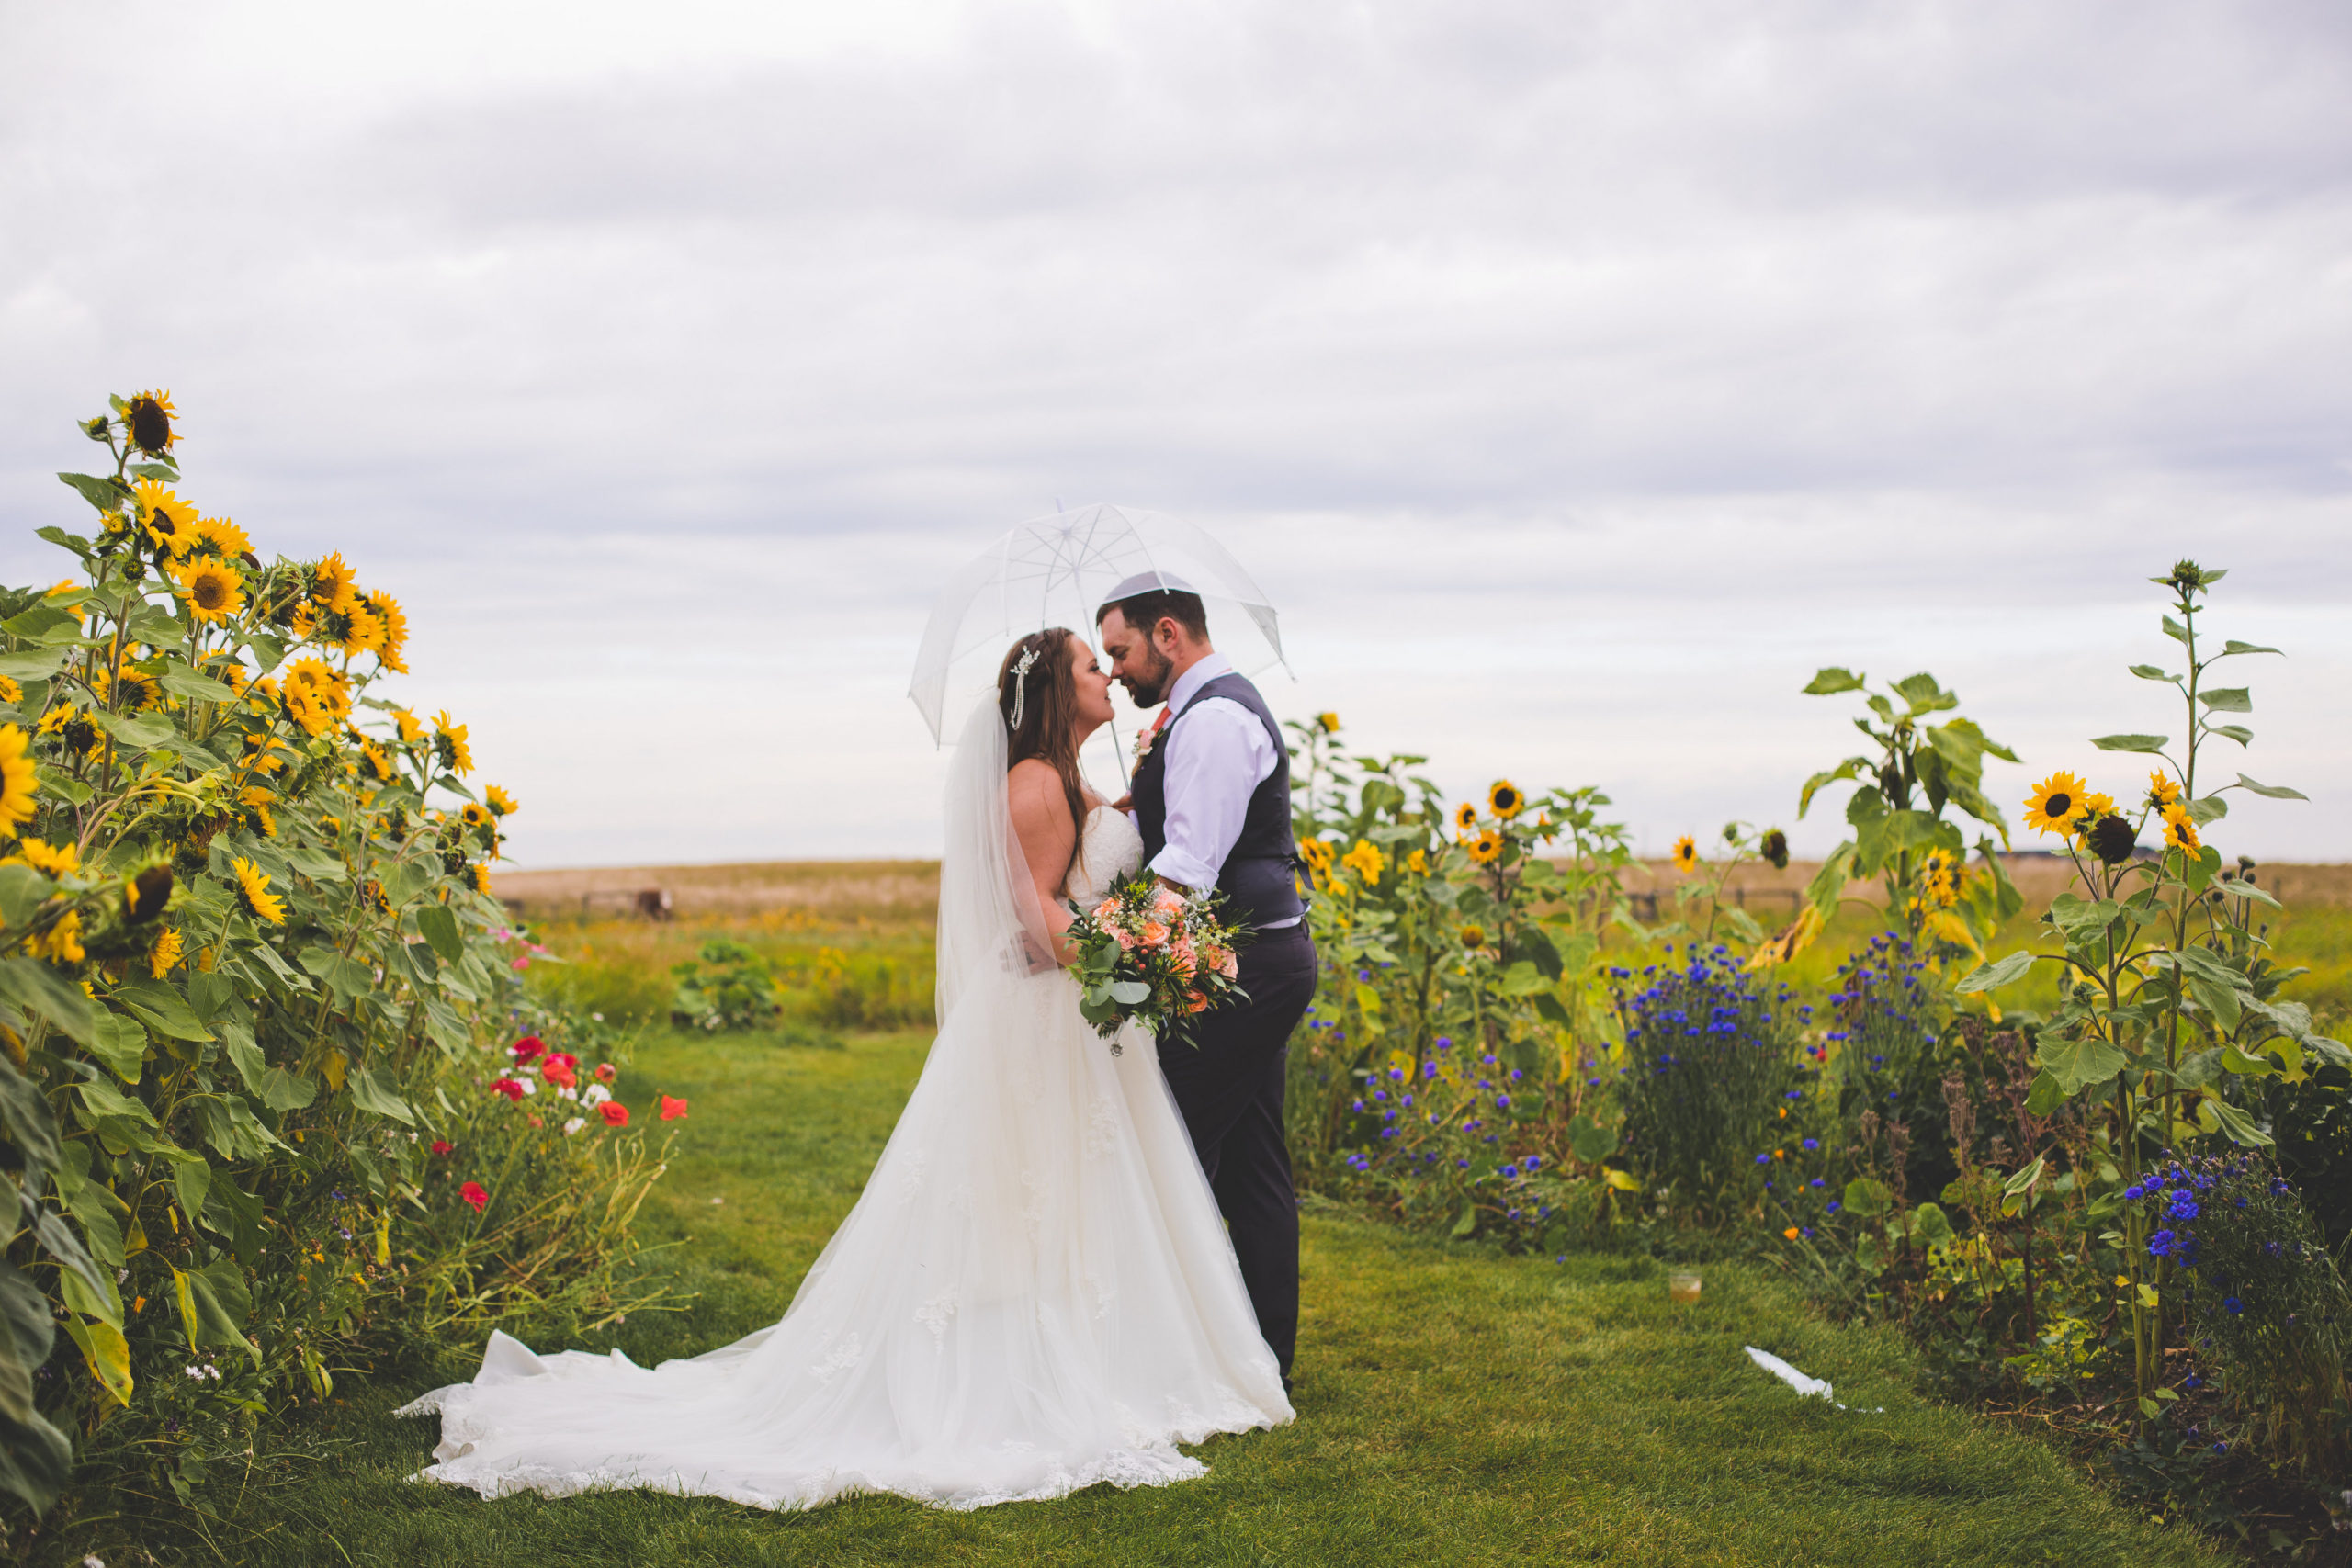 sunflowers and wild flowers line a grassy path and a bride and groom walk down it while they stare at each other. https://www.thegathered.ca